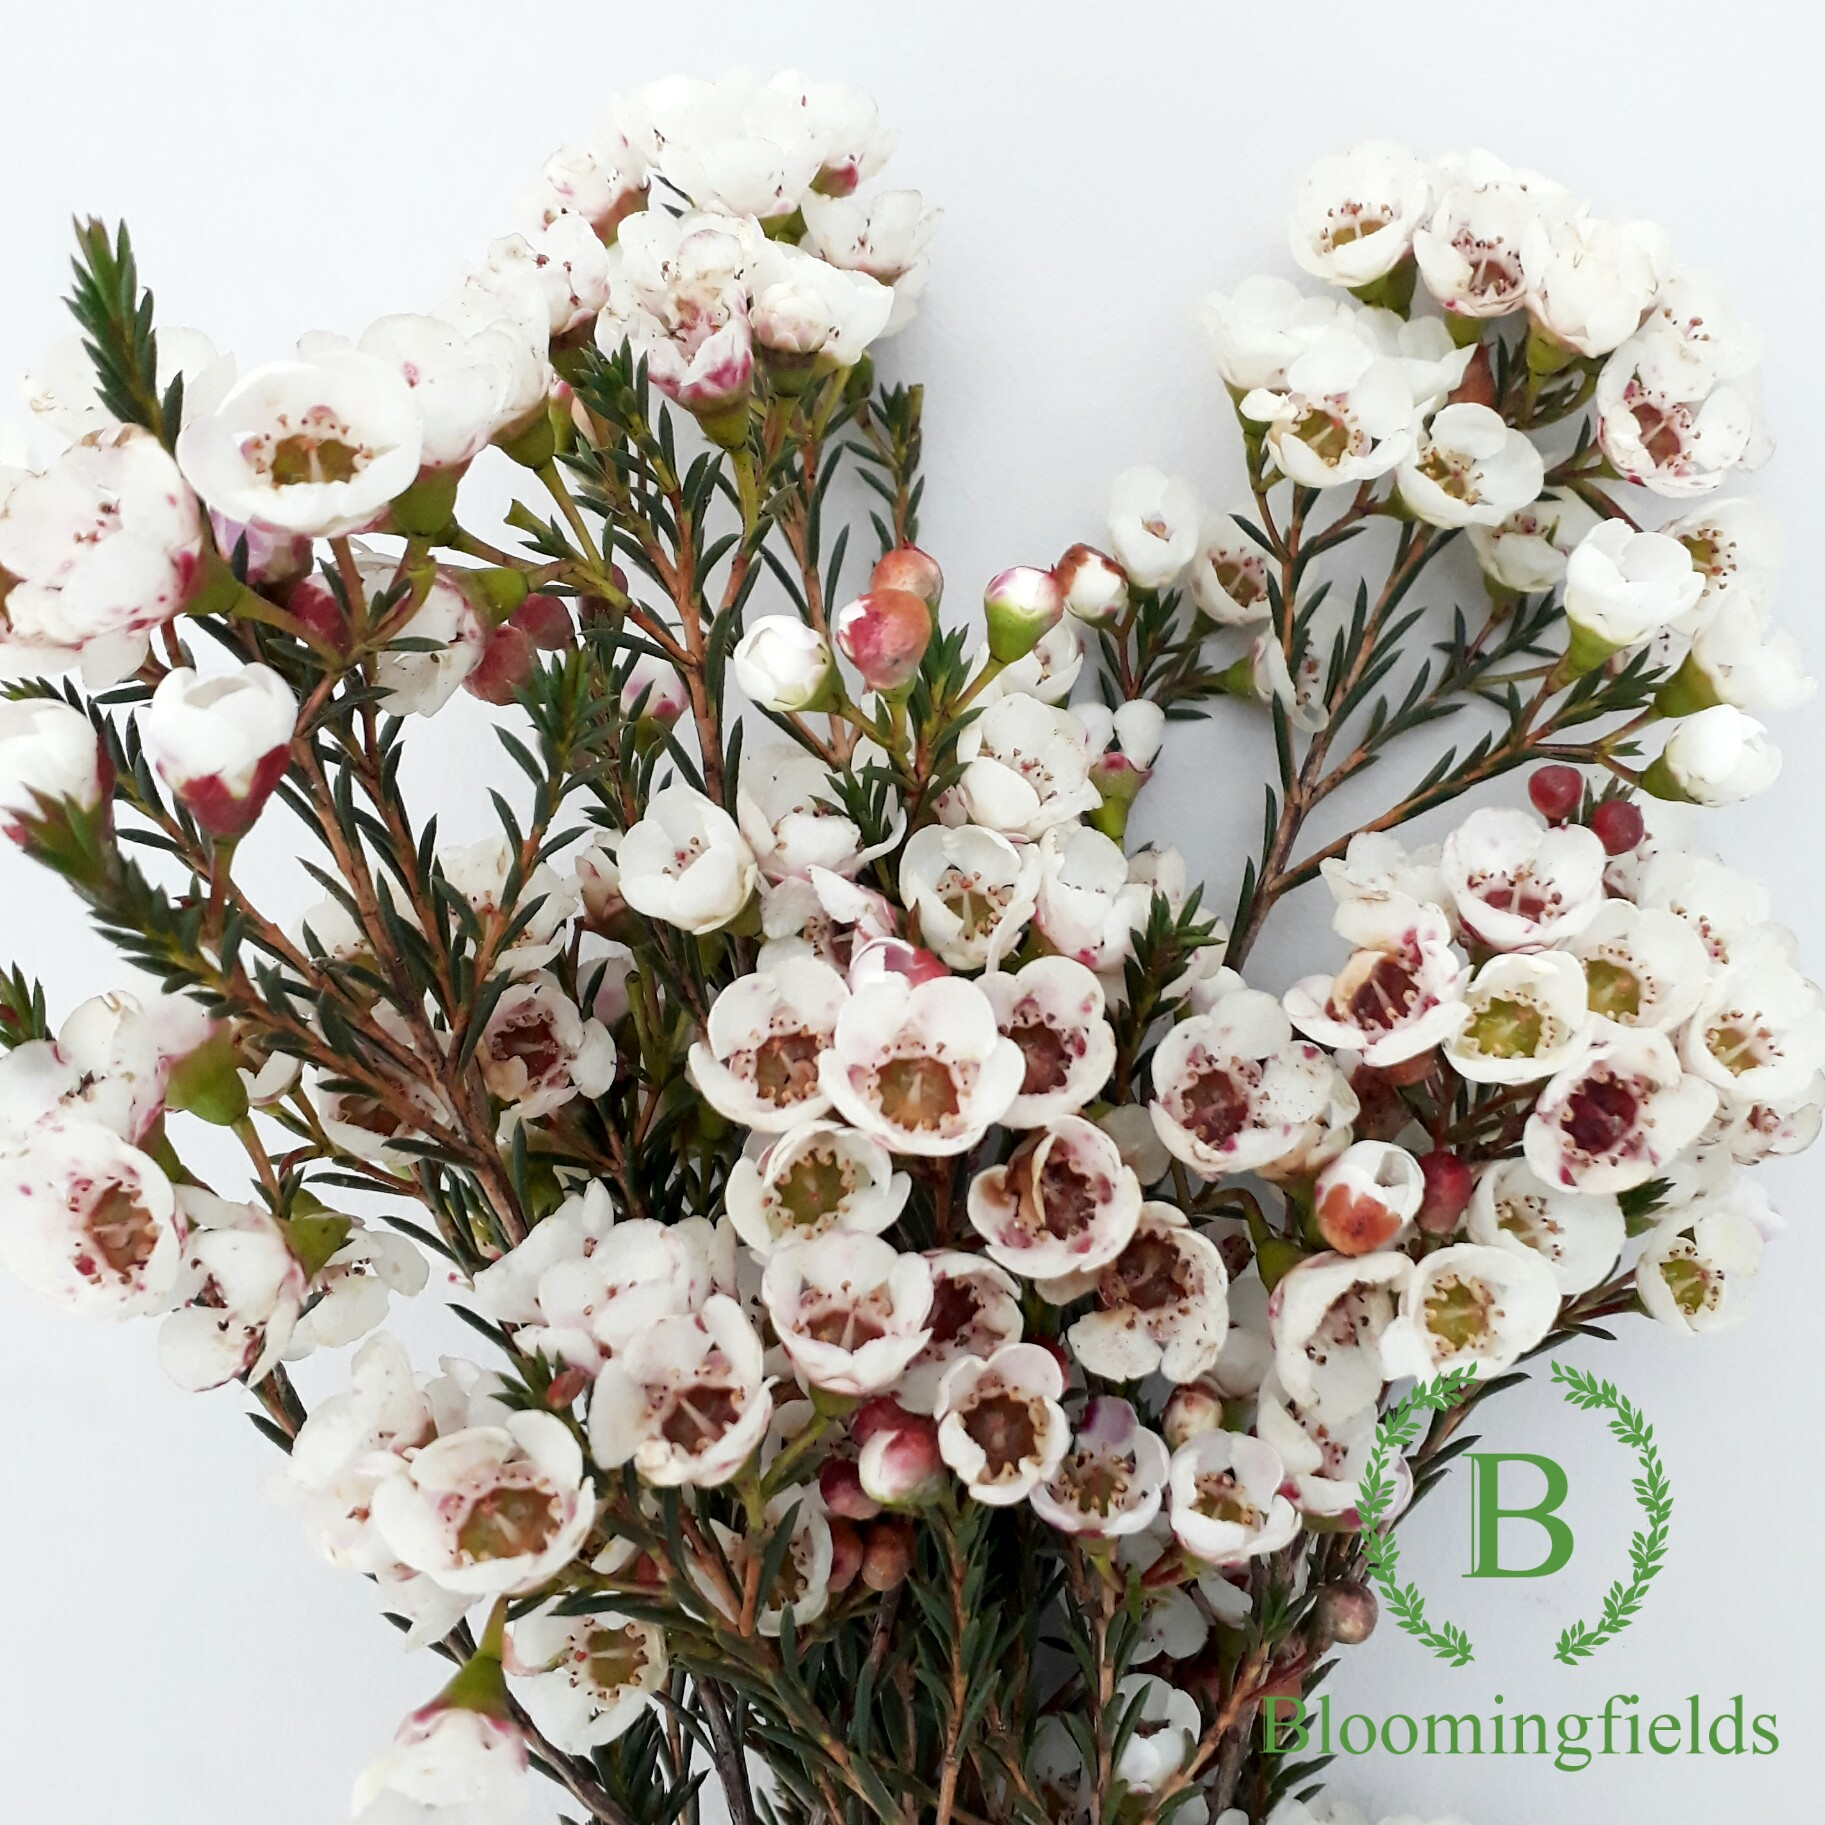 About Waxflowers image